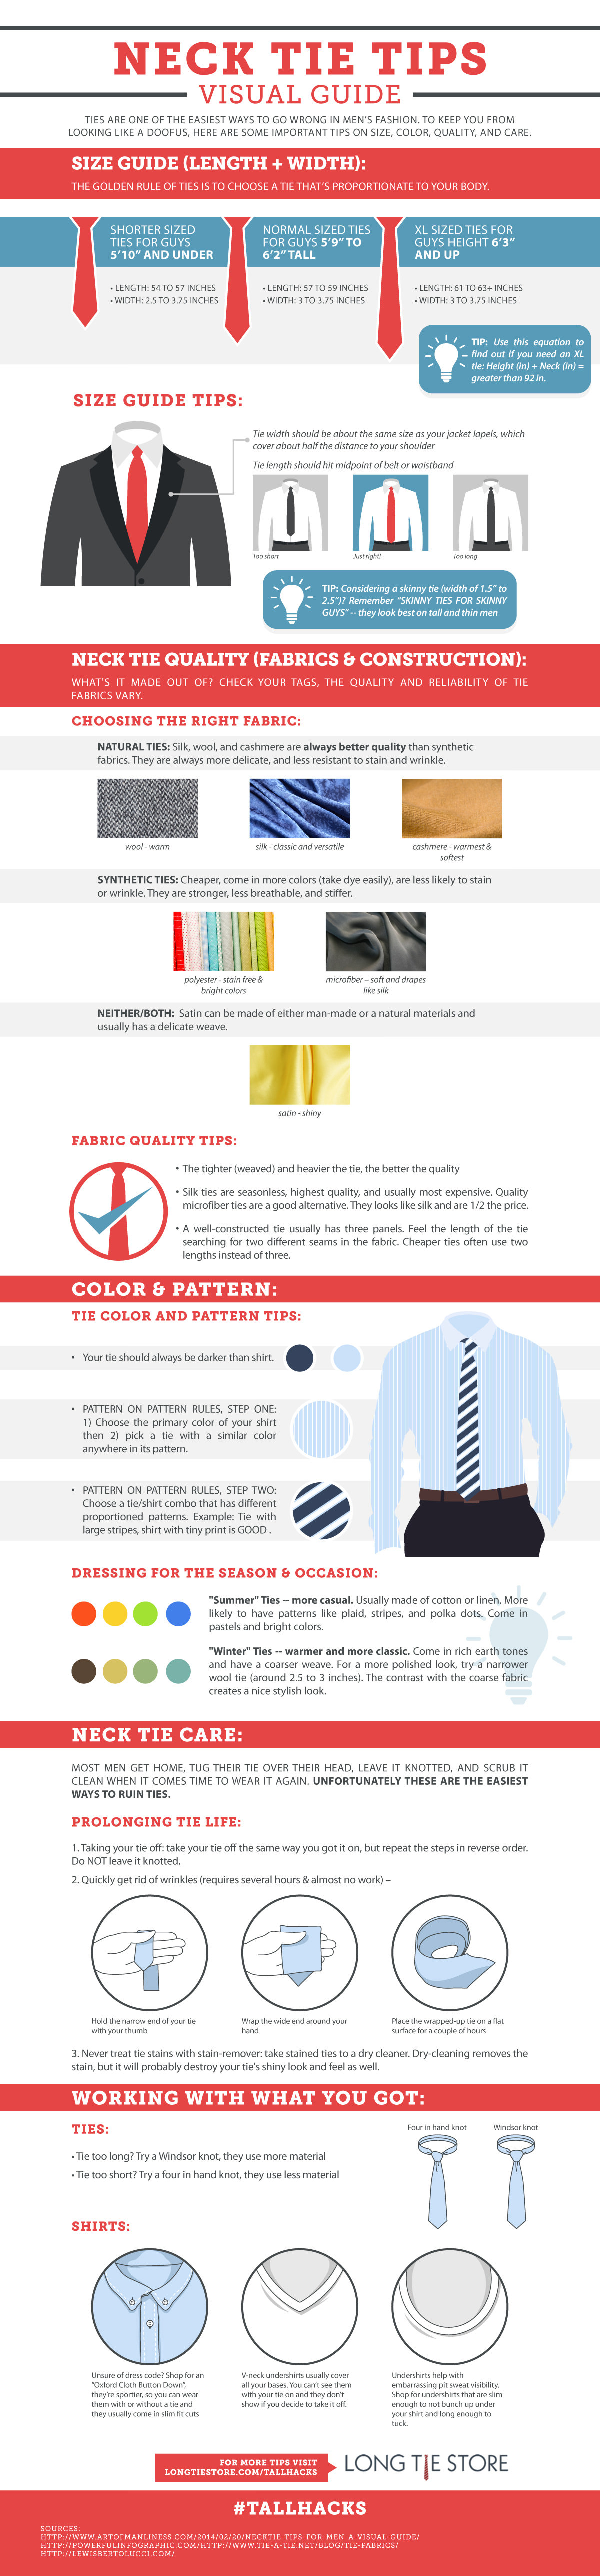 Necktie Tips